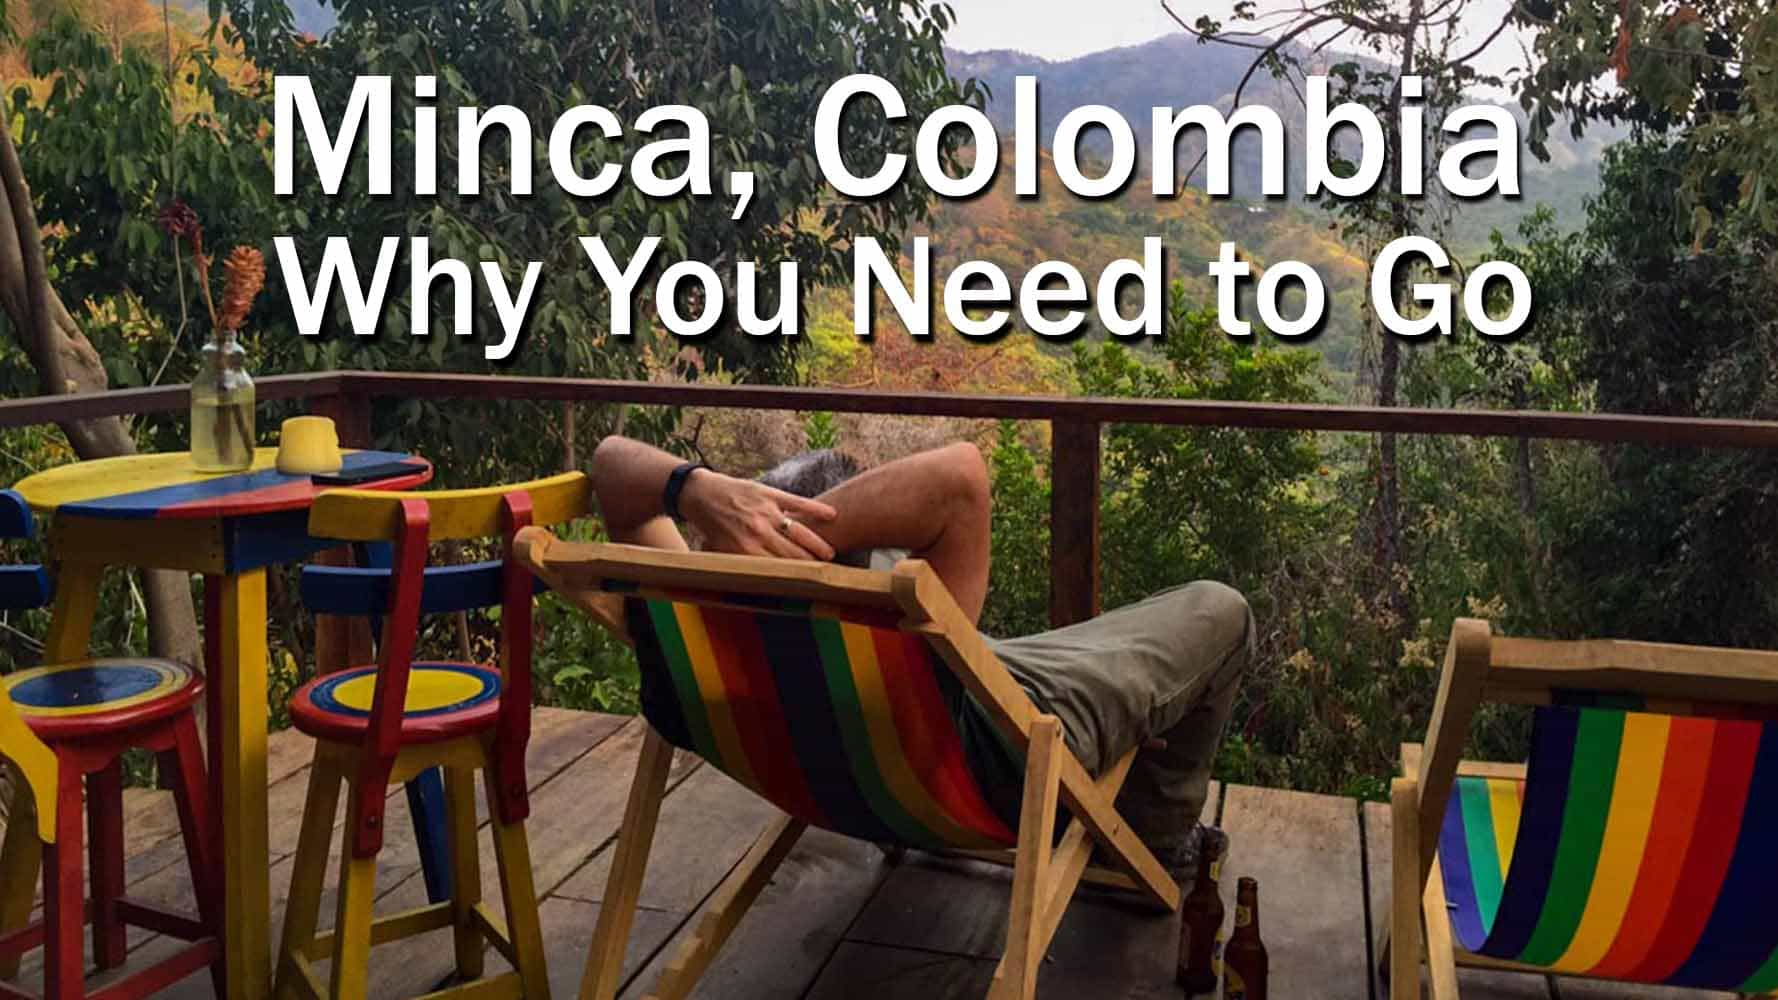 Minca Colombia Why You Need To Go